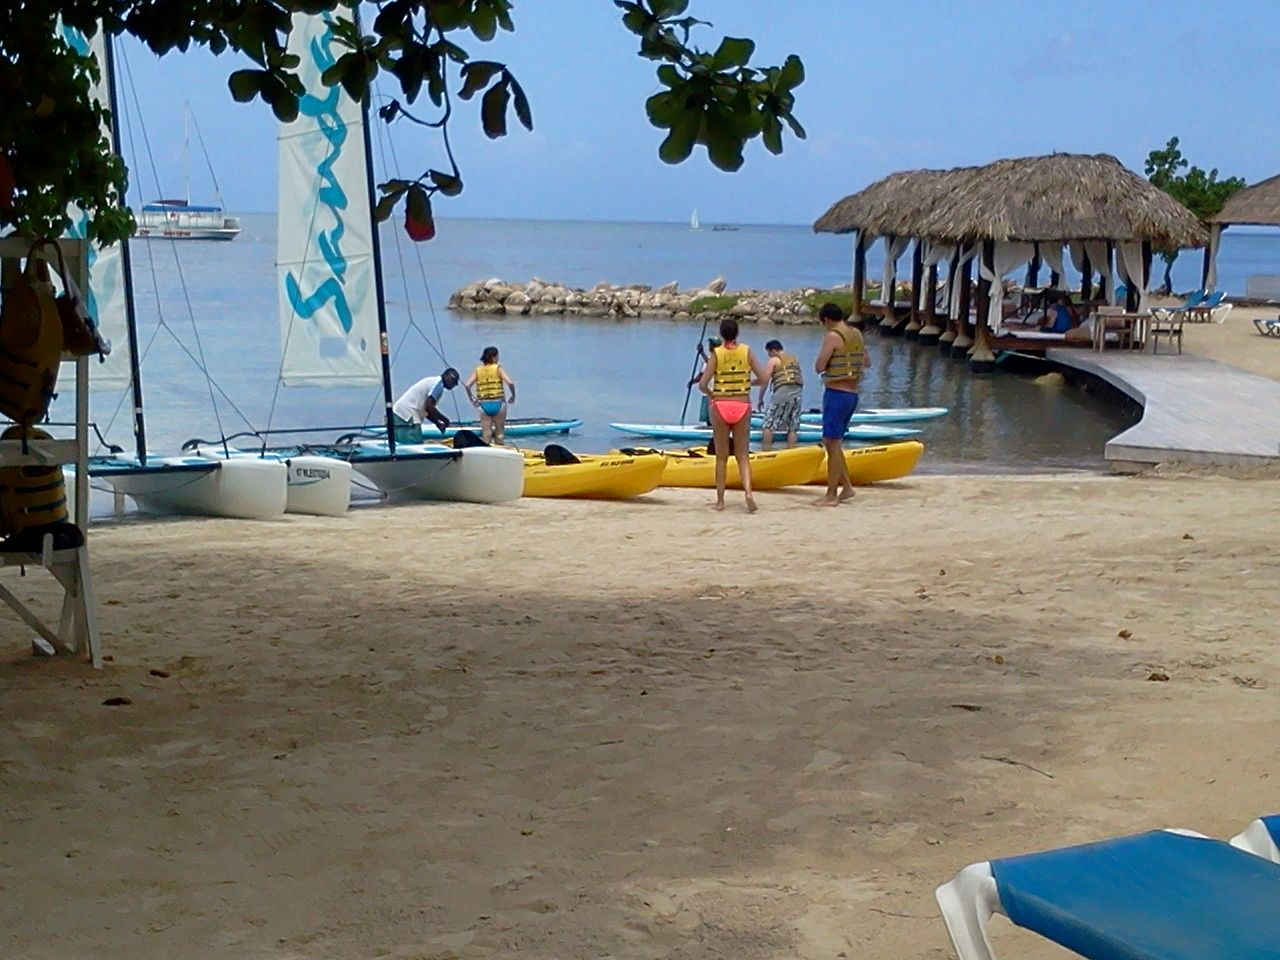 The beach at Sandals Resorts, Negril, Jamaica.